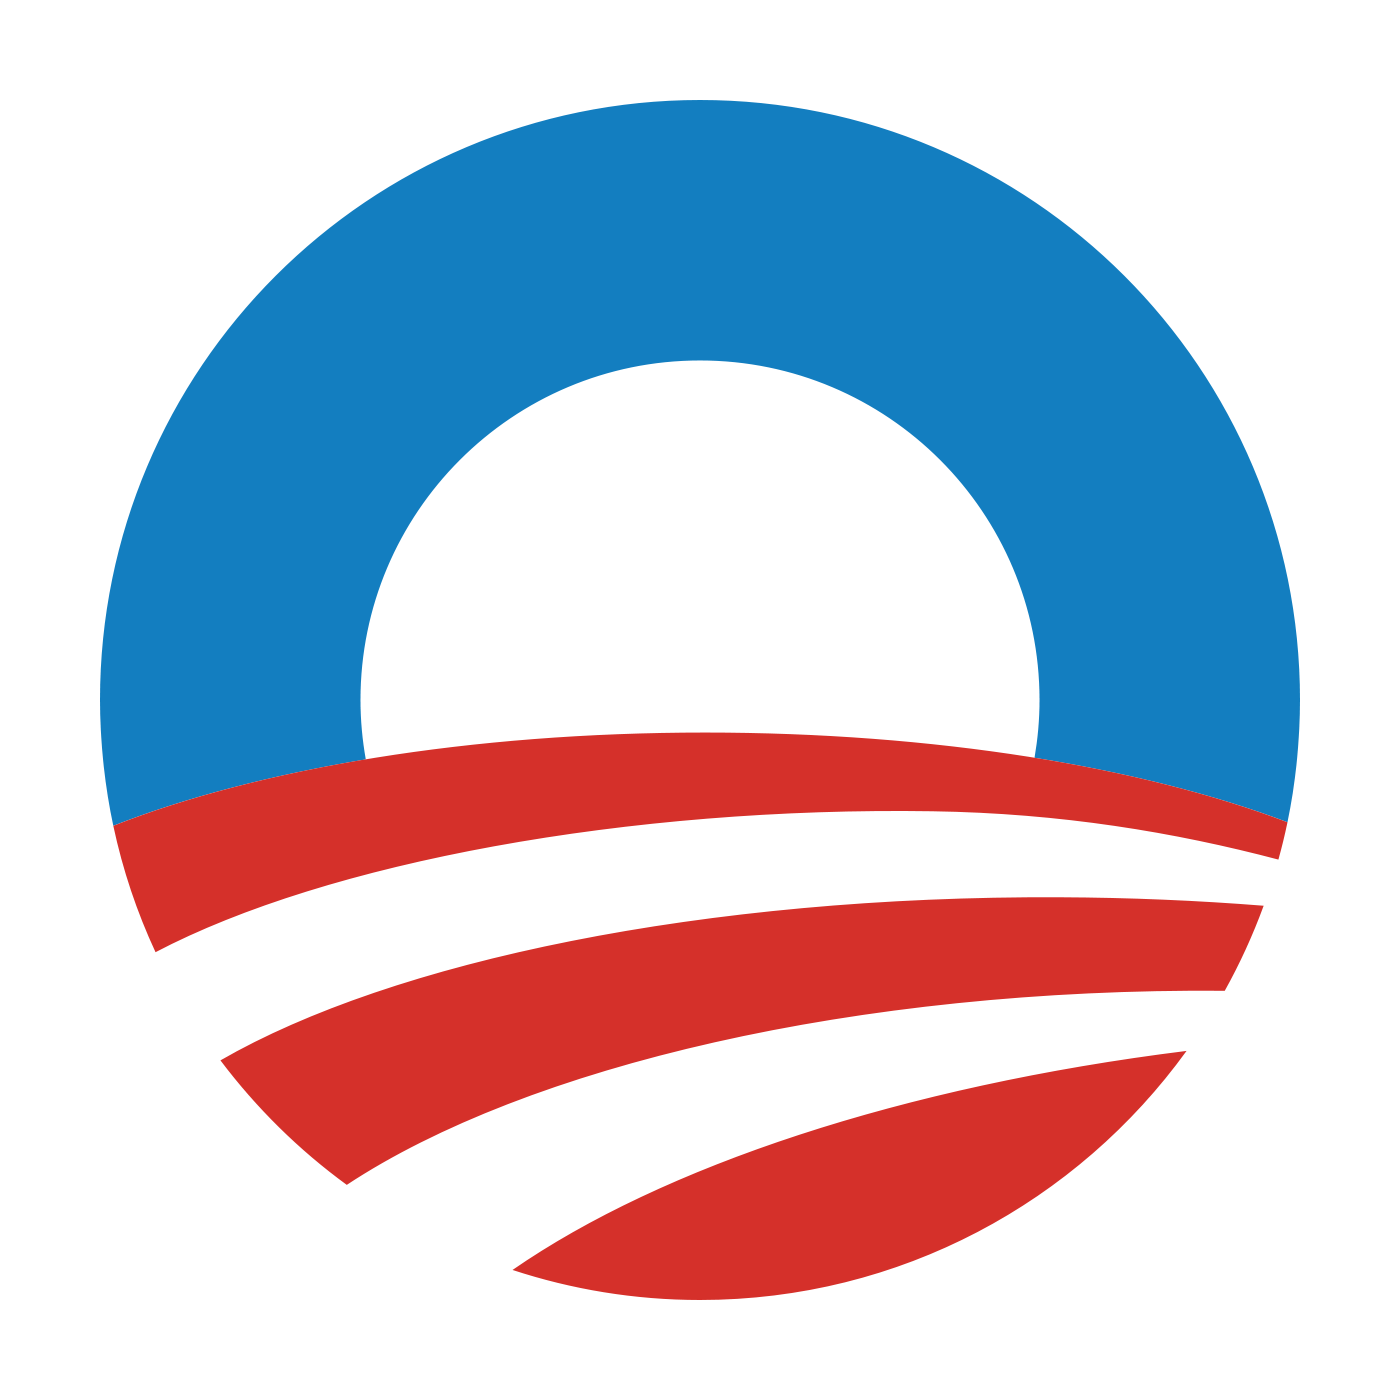 Obama logo png. Symbol meaning history and